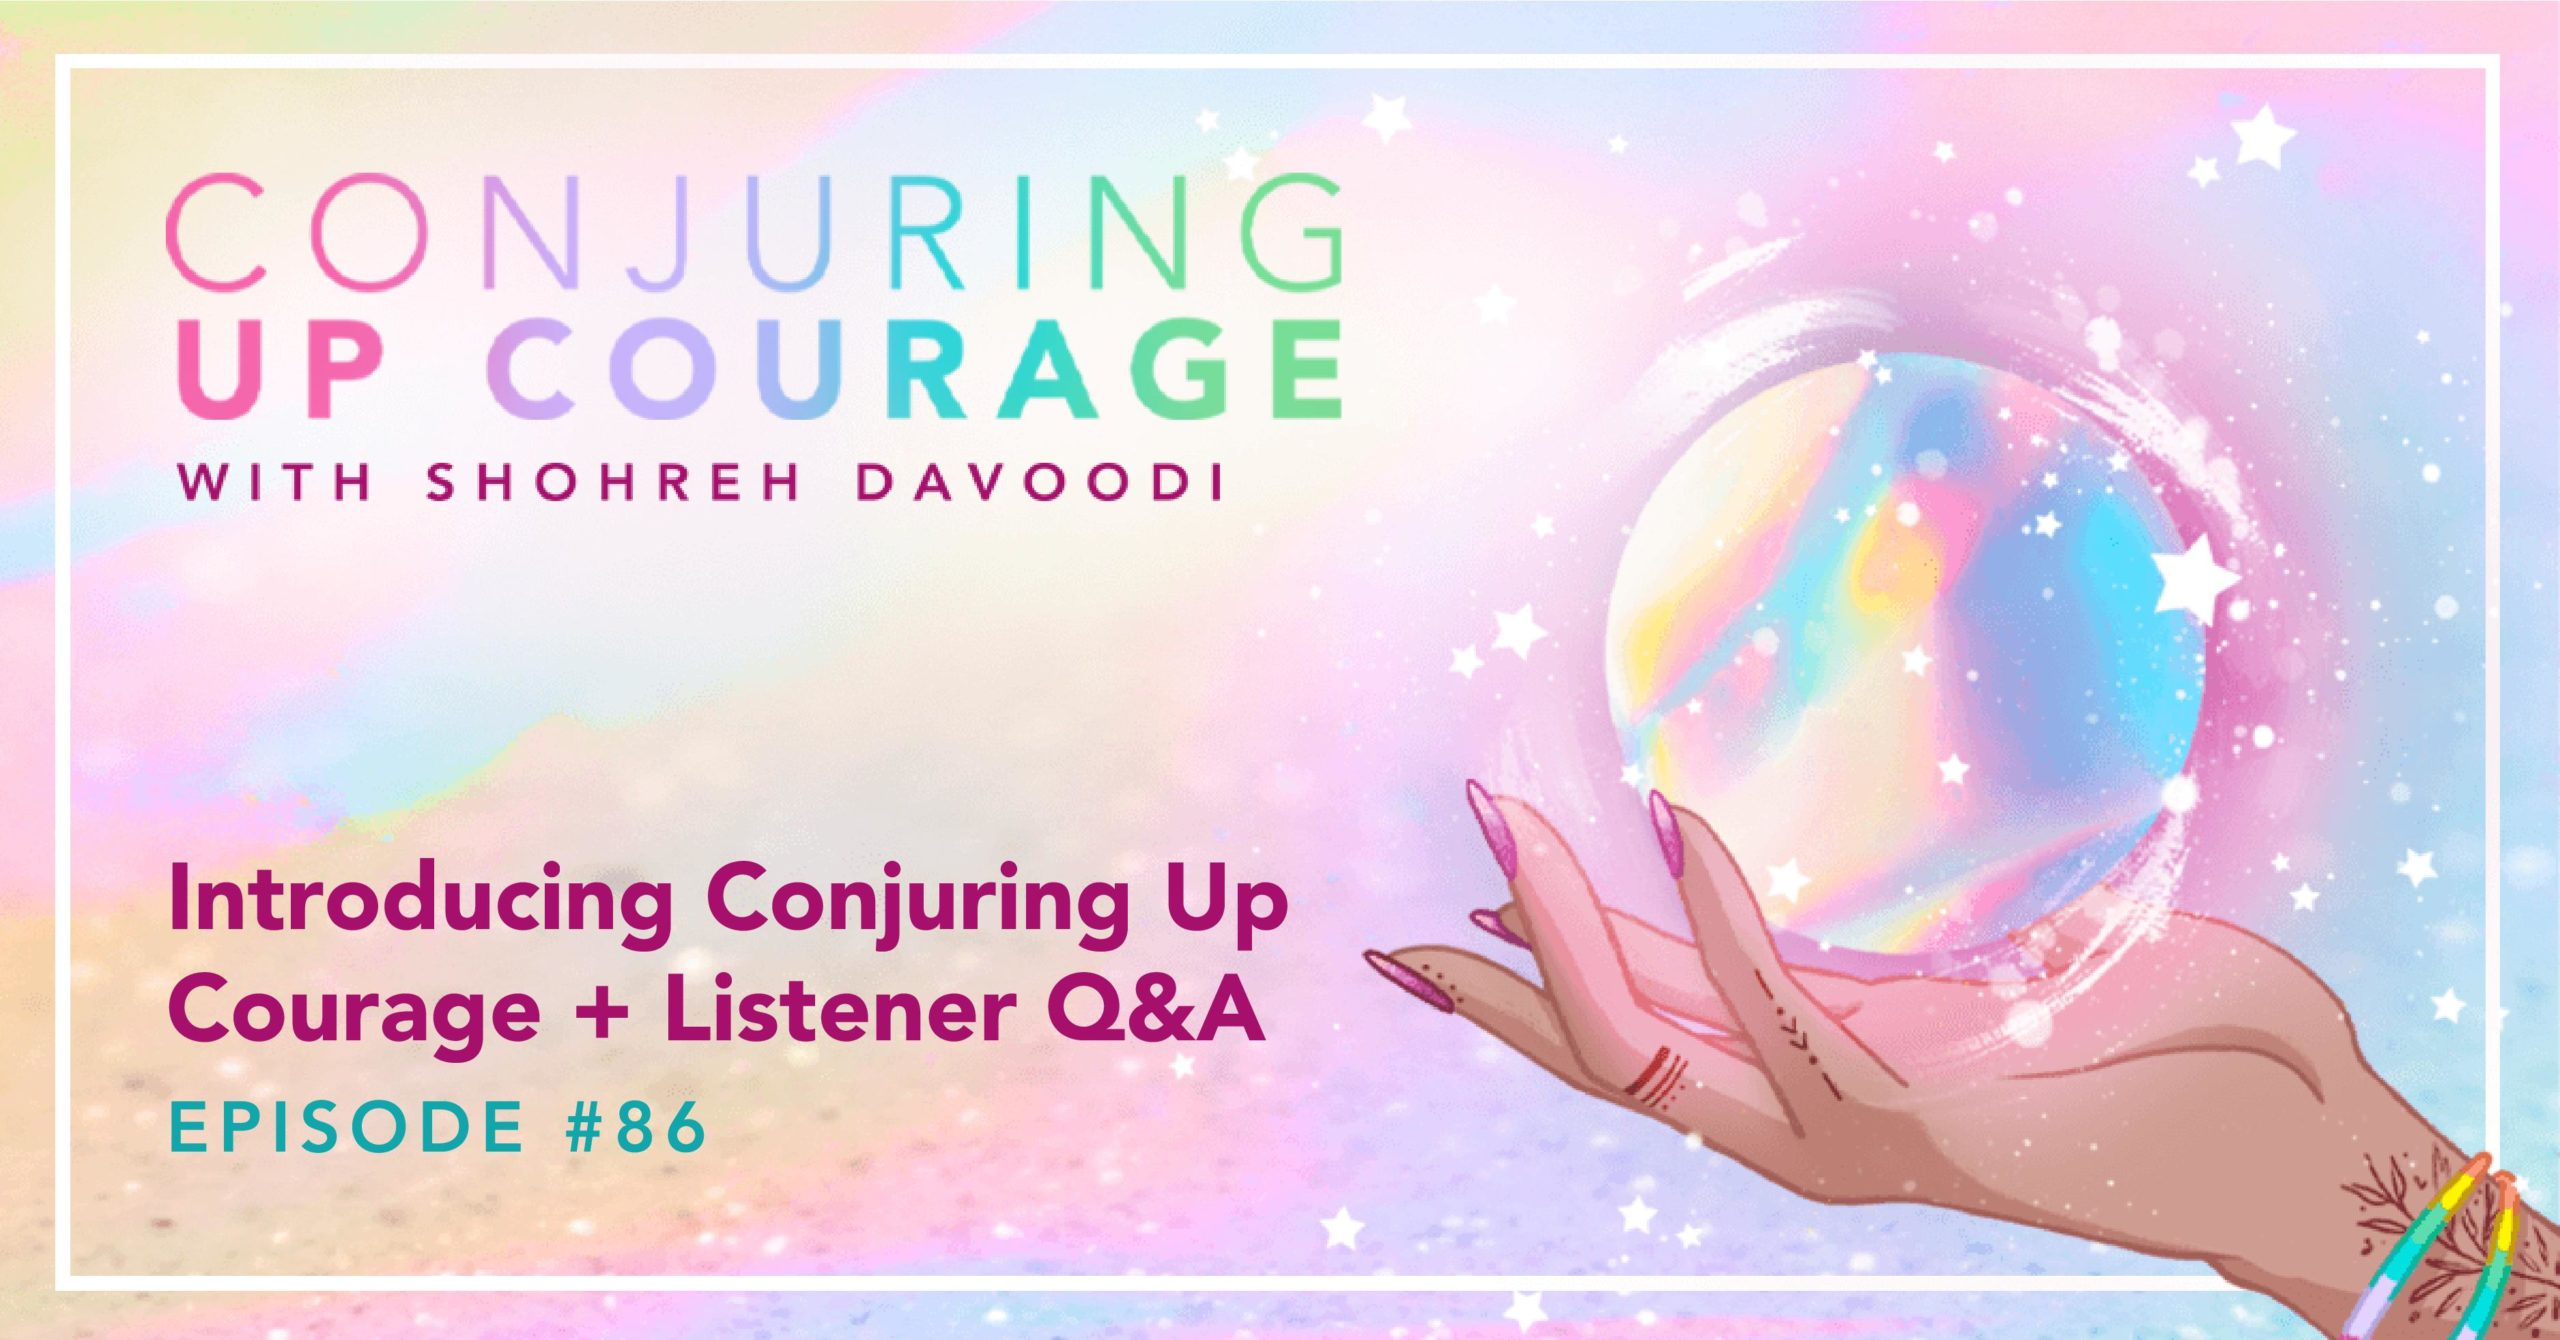 """The Conjuring Up Courage logo, a hand holding a rainbow pastel crystal ball, and the words, """"Introducing Conjuring Up Courage + Listener Q&A Episode #86"""""""